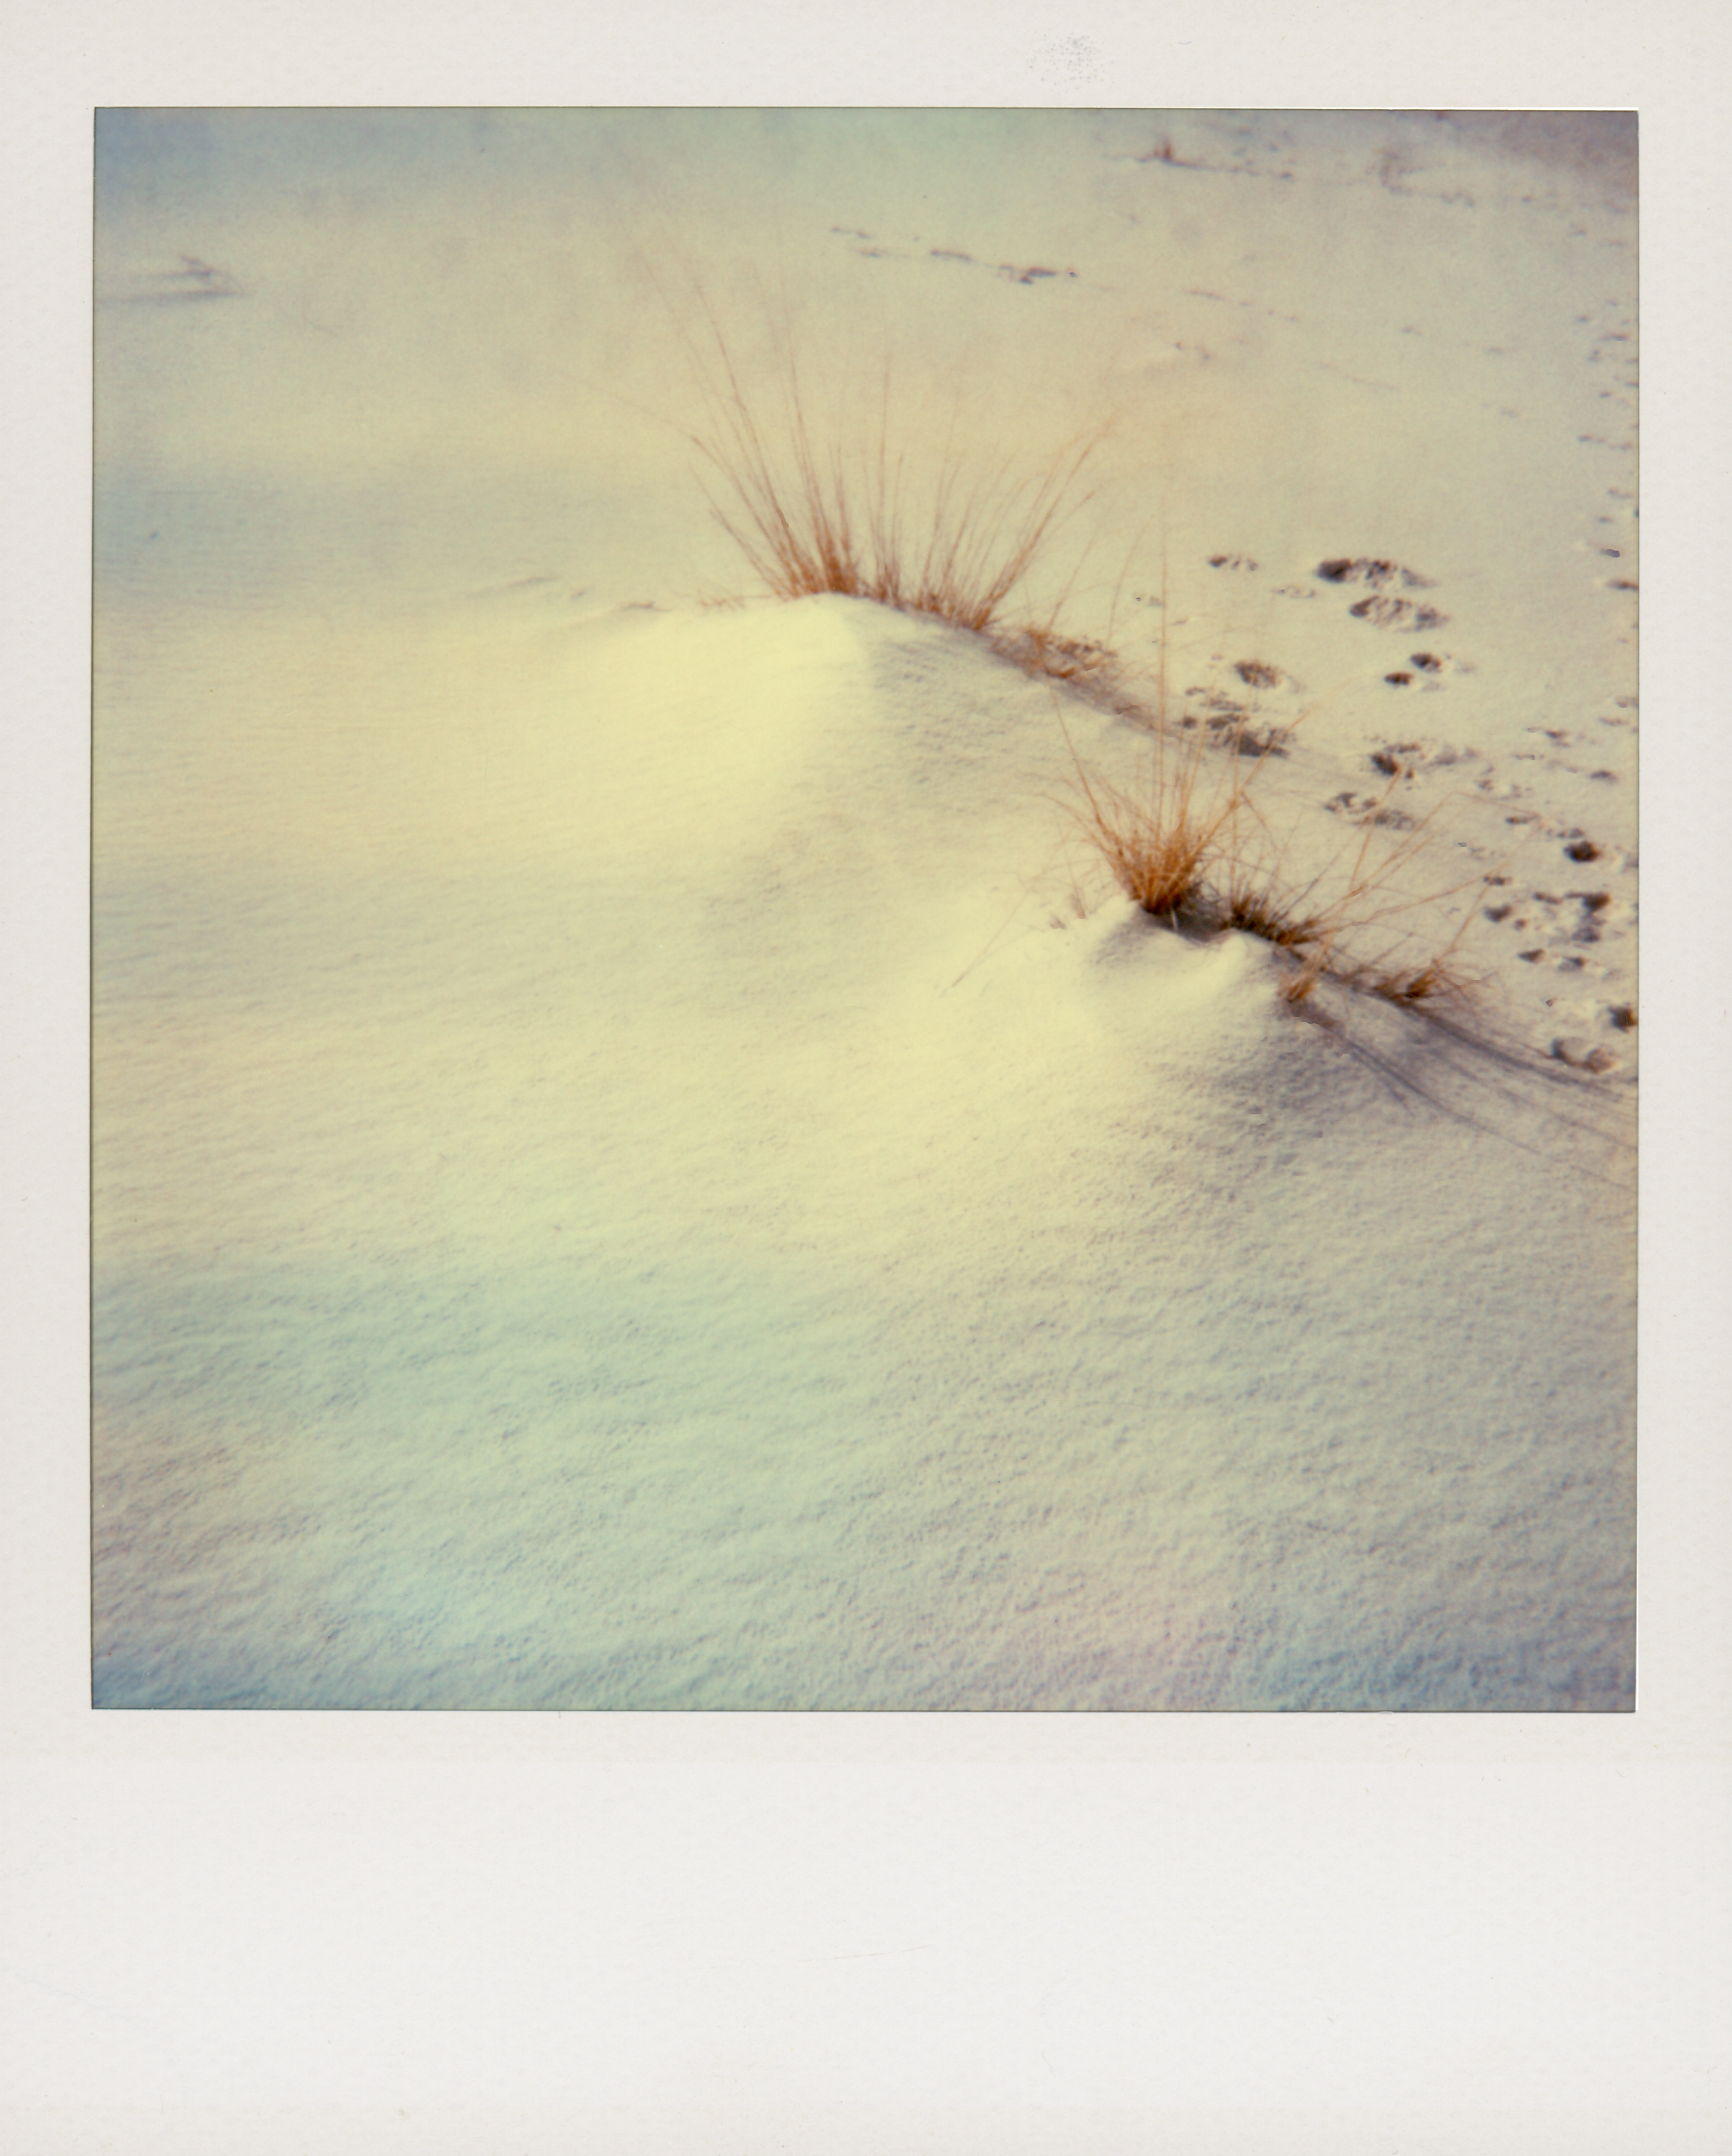 polaroid white sands002.jpg